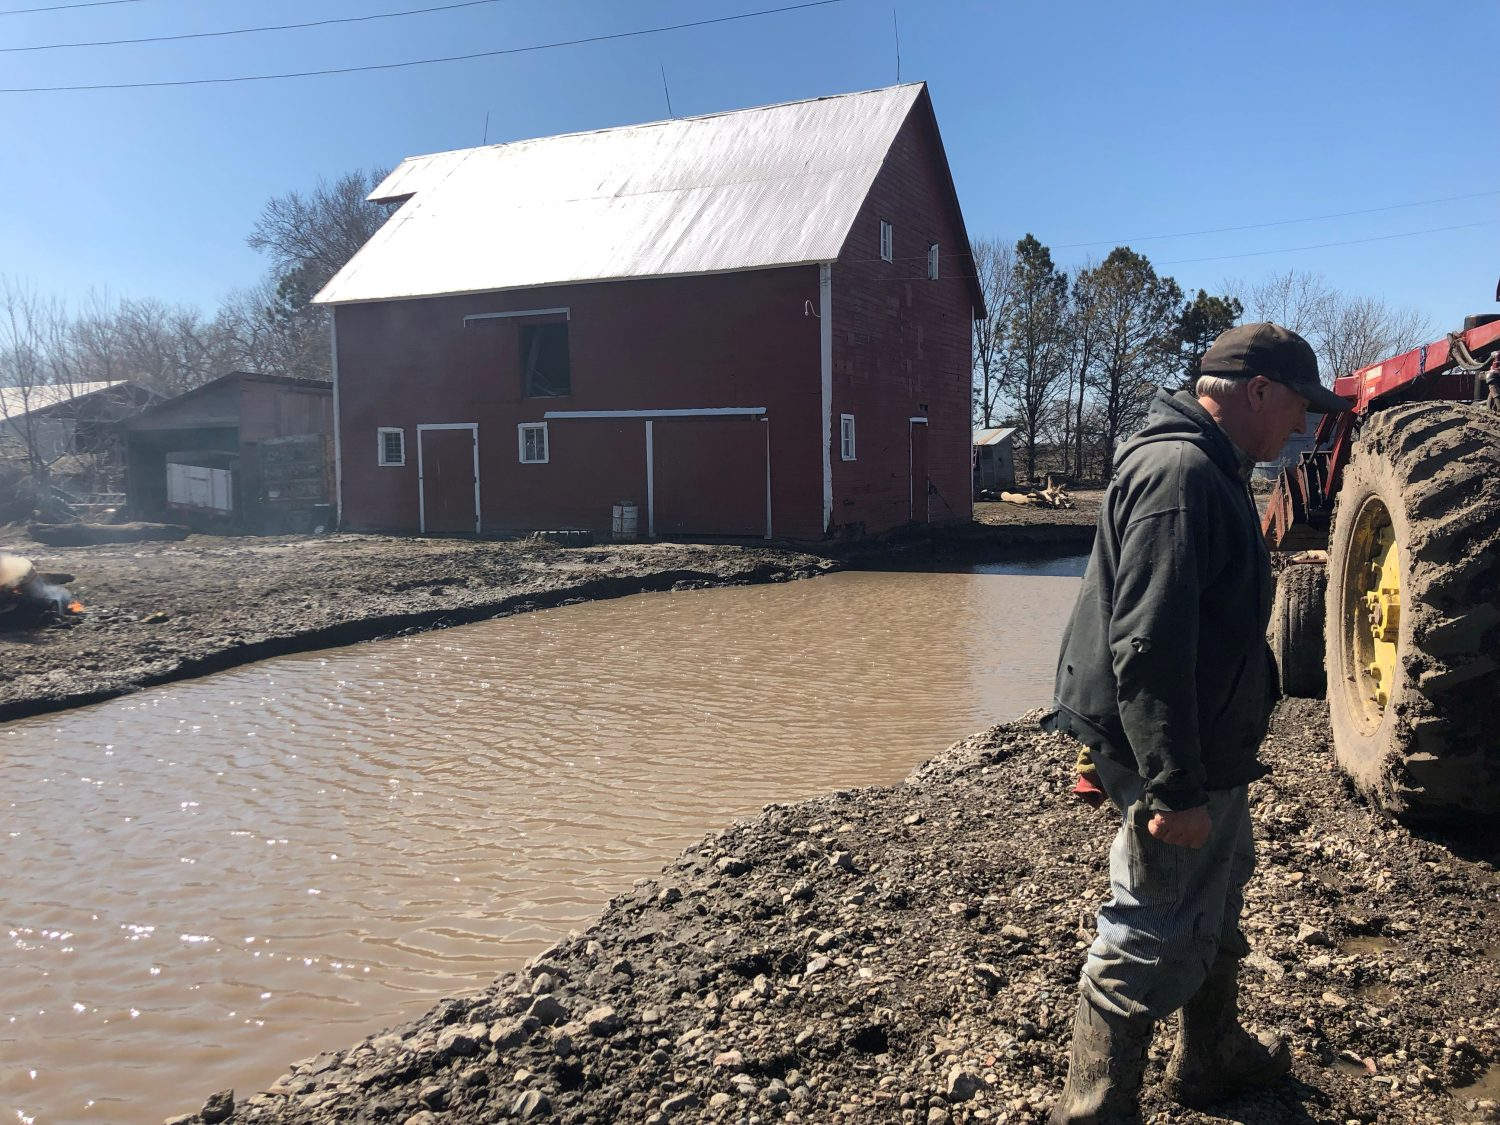 FILE PHOTO: Tom Geisler surveys damaged to his farm, following flooding in Winslow, outside Omaha, Nebraska, U.S., March 20, 2019. REUTERS/Humeyra Pamuk/File Photo